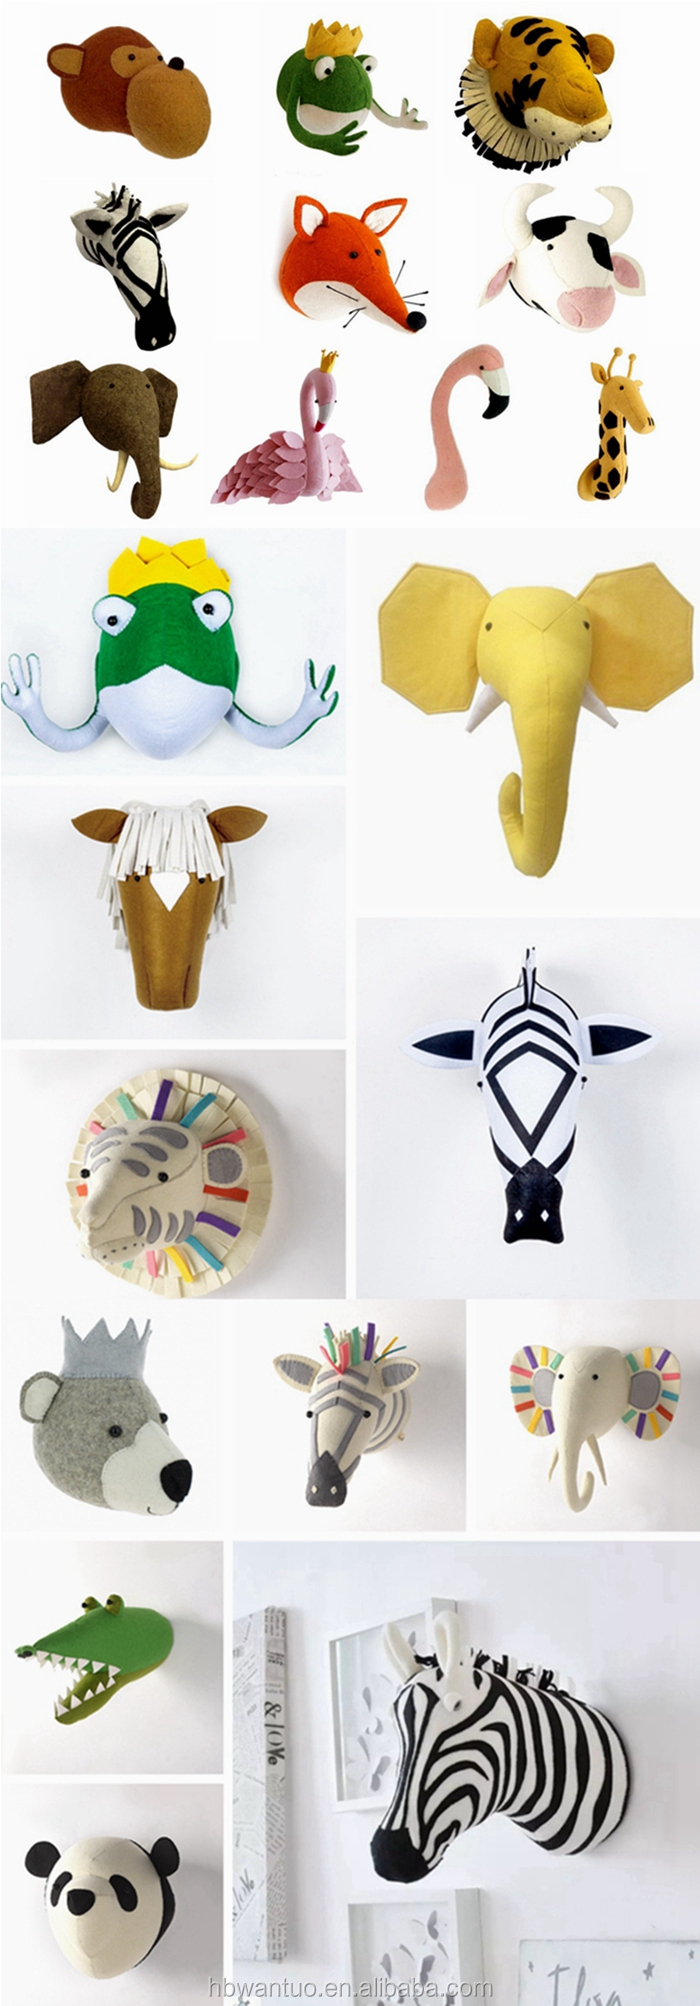 Hot Sell Felt Animal Head for Baby Room Decor Baby Kids Bedroom Hangings Wall Decoration